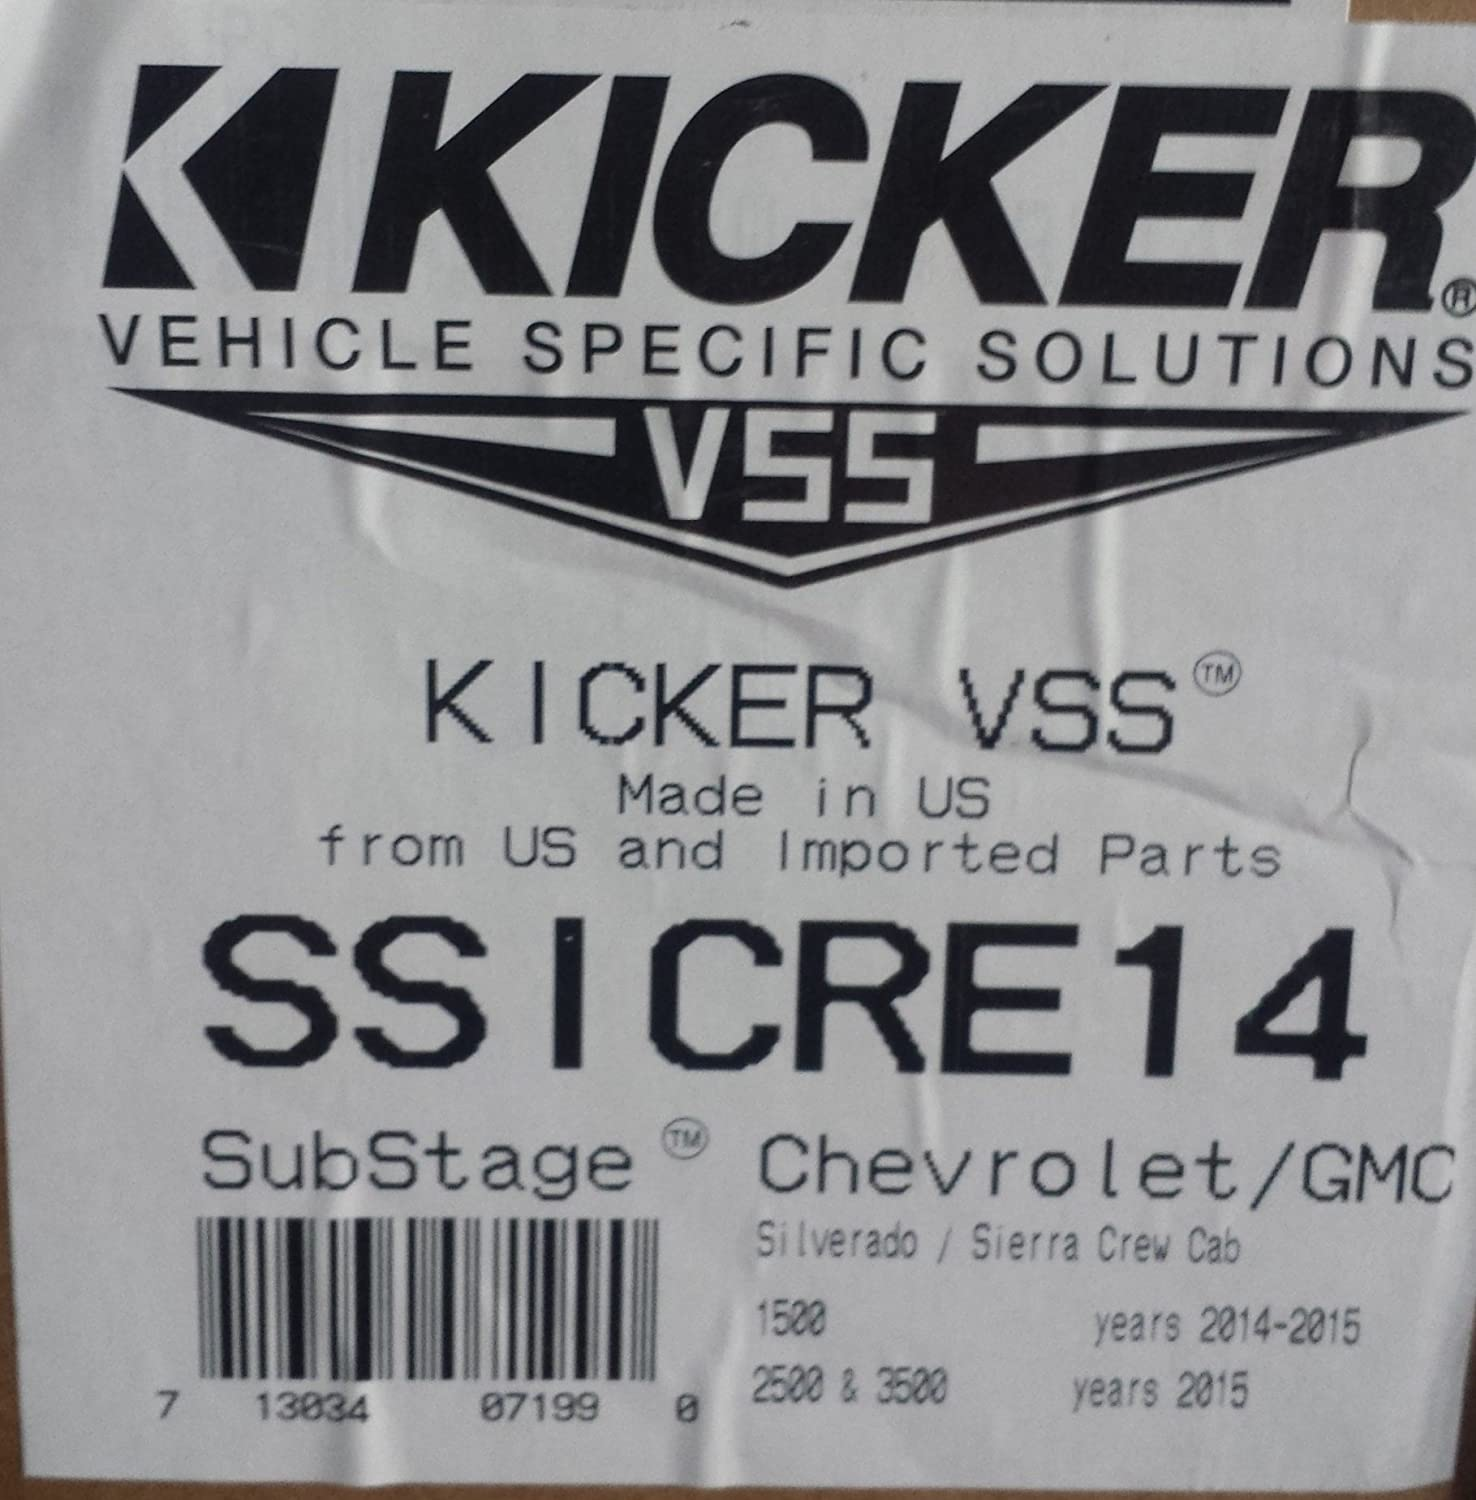 Kicker Ssicre14 Powered Subwoofer Upgrade Kit For 2014 7 Pole Wiring Diagram A Chevrolet Pick Up Silverado Gmc Sierra Crew Cab Home Audio Theater